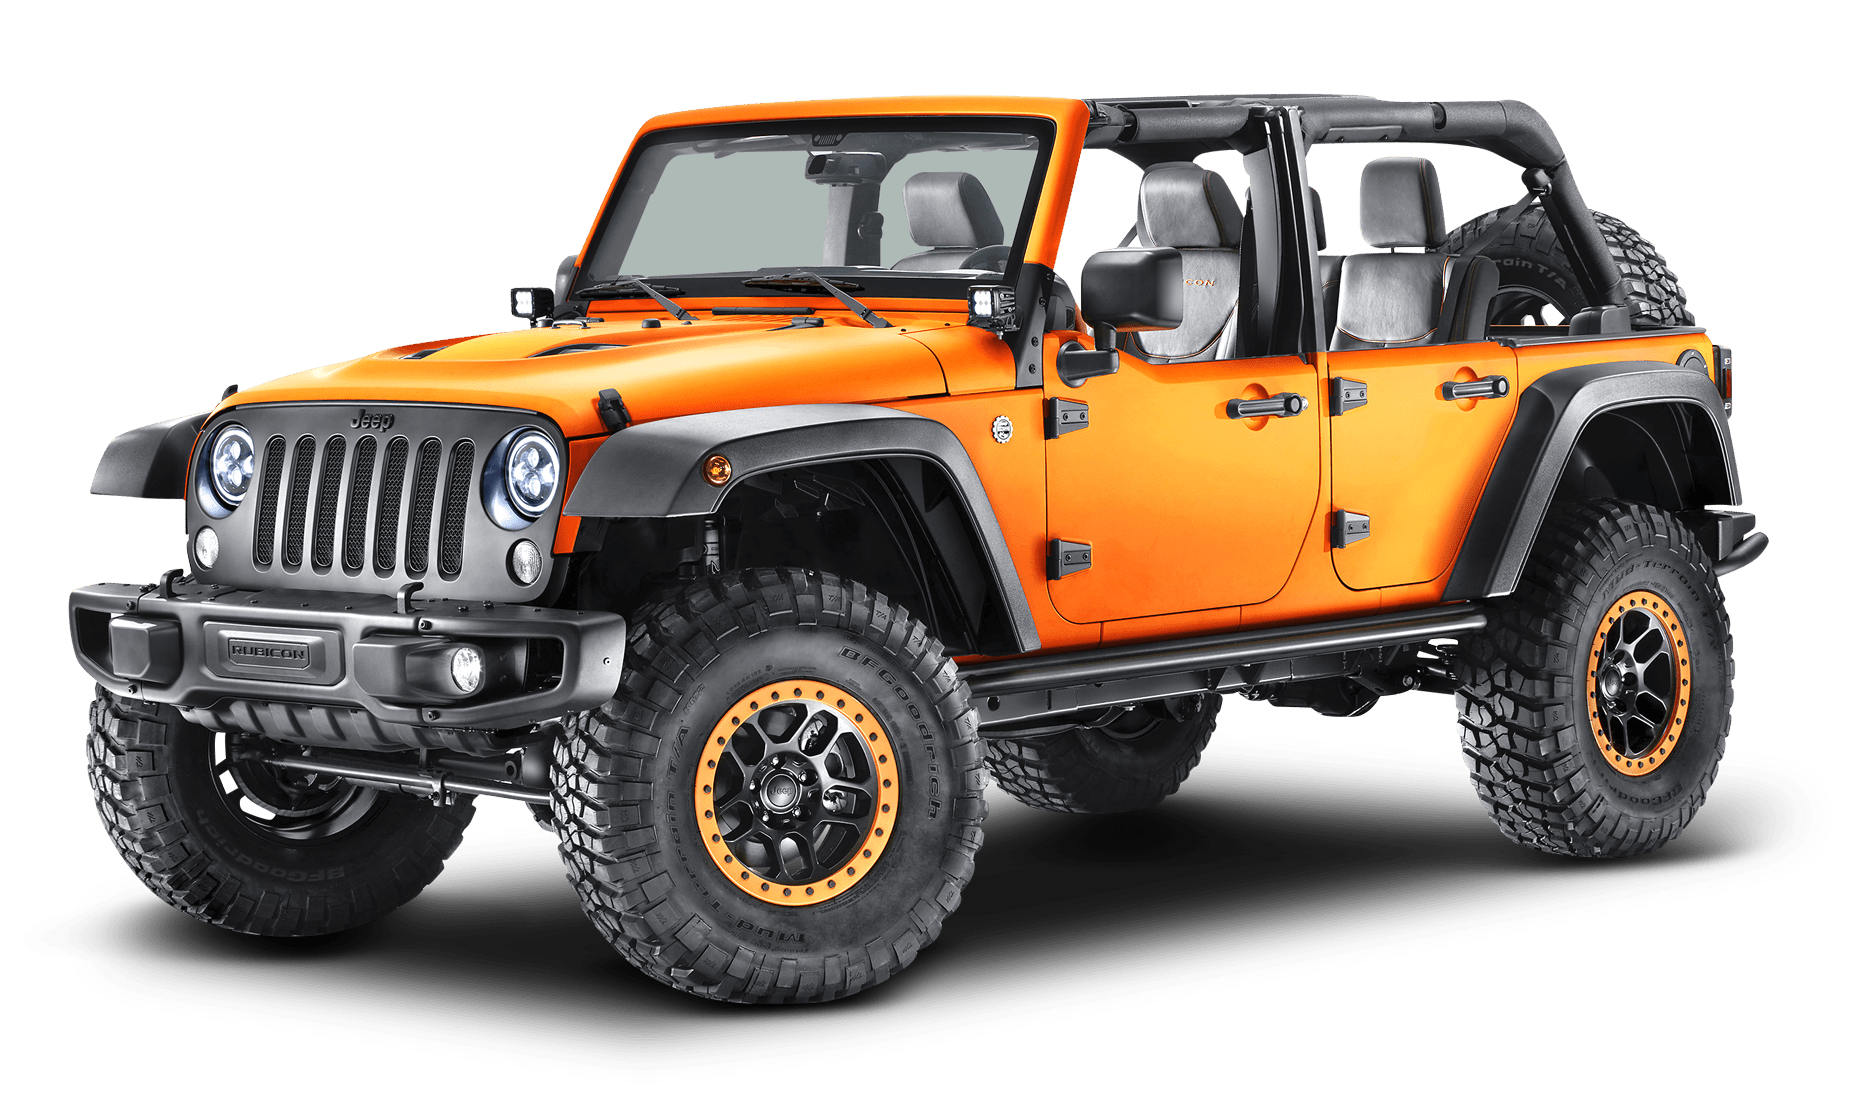 Revamp your Jeep's Performance On Roads with MySyara By Booking For Jeep Engine Repair Service Today!